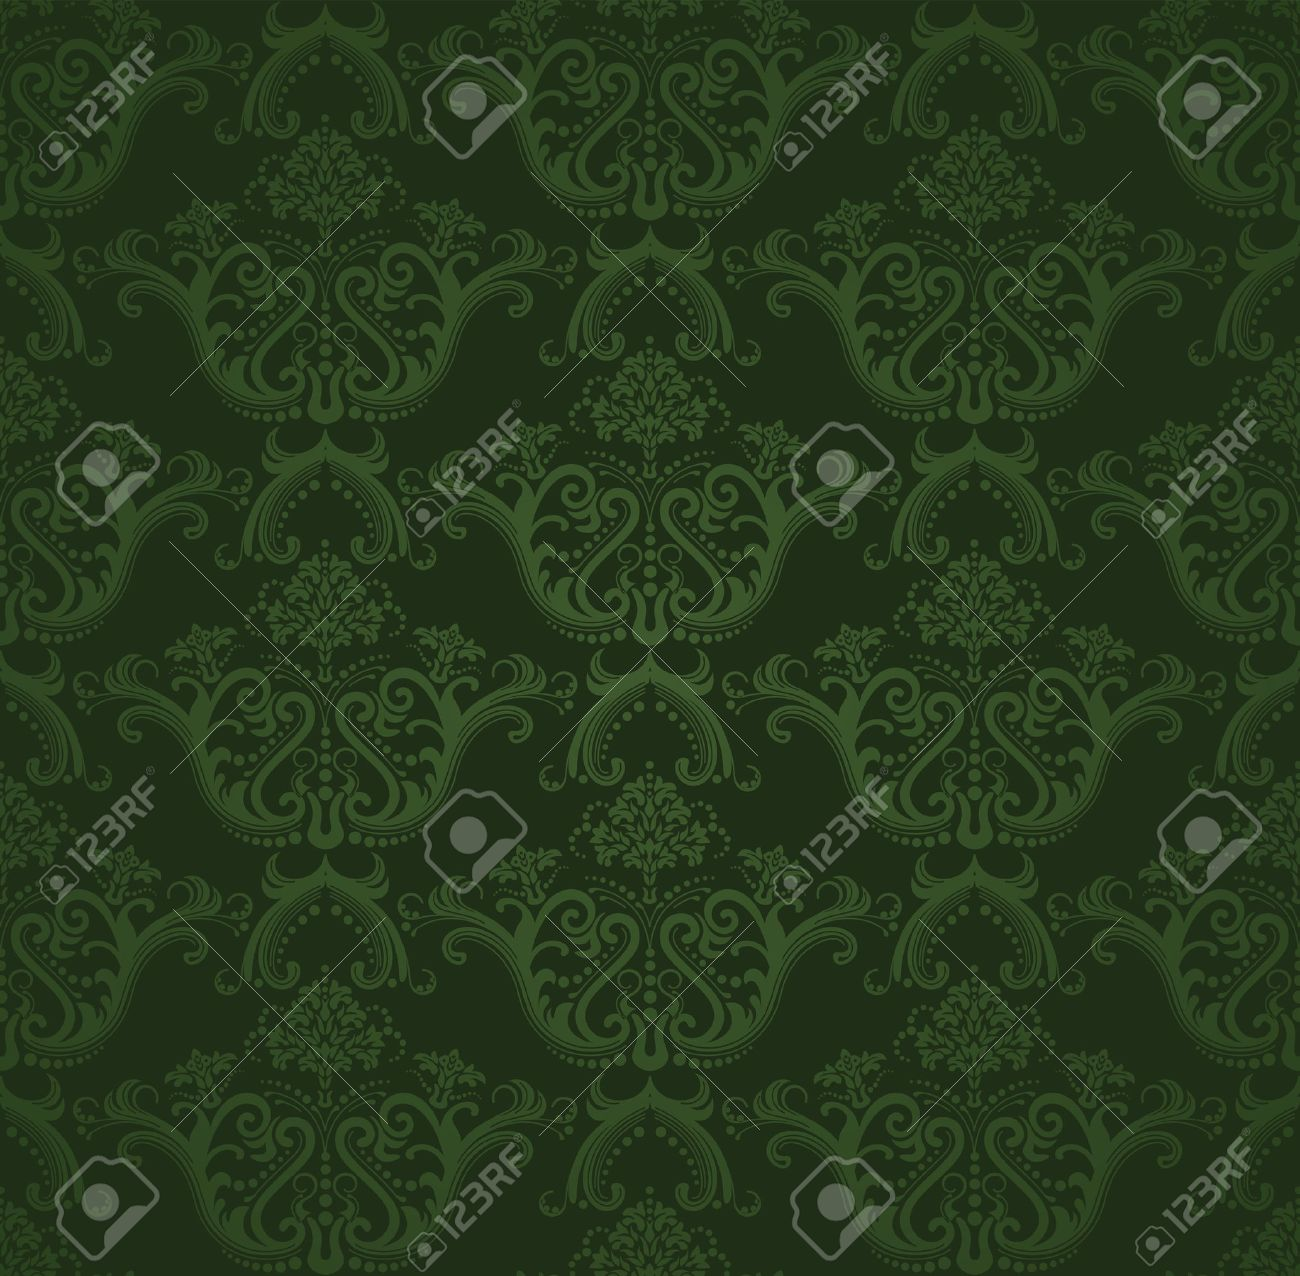 Dark Green Floral Wallpaper Royalty Free Cliparts Vectors And